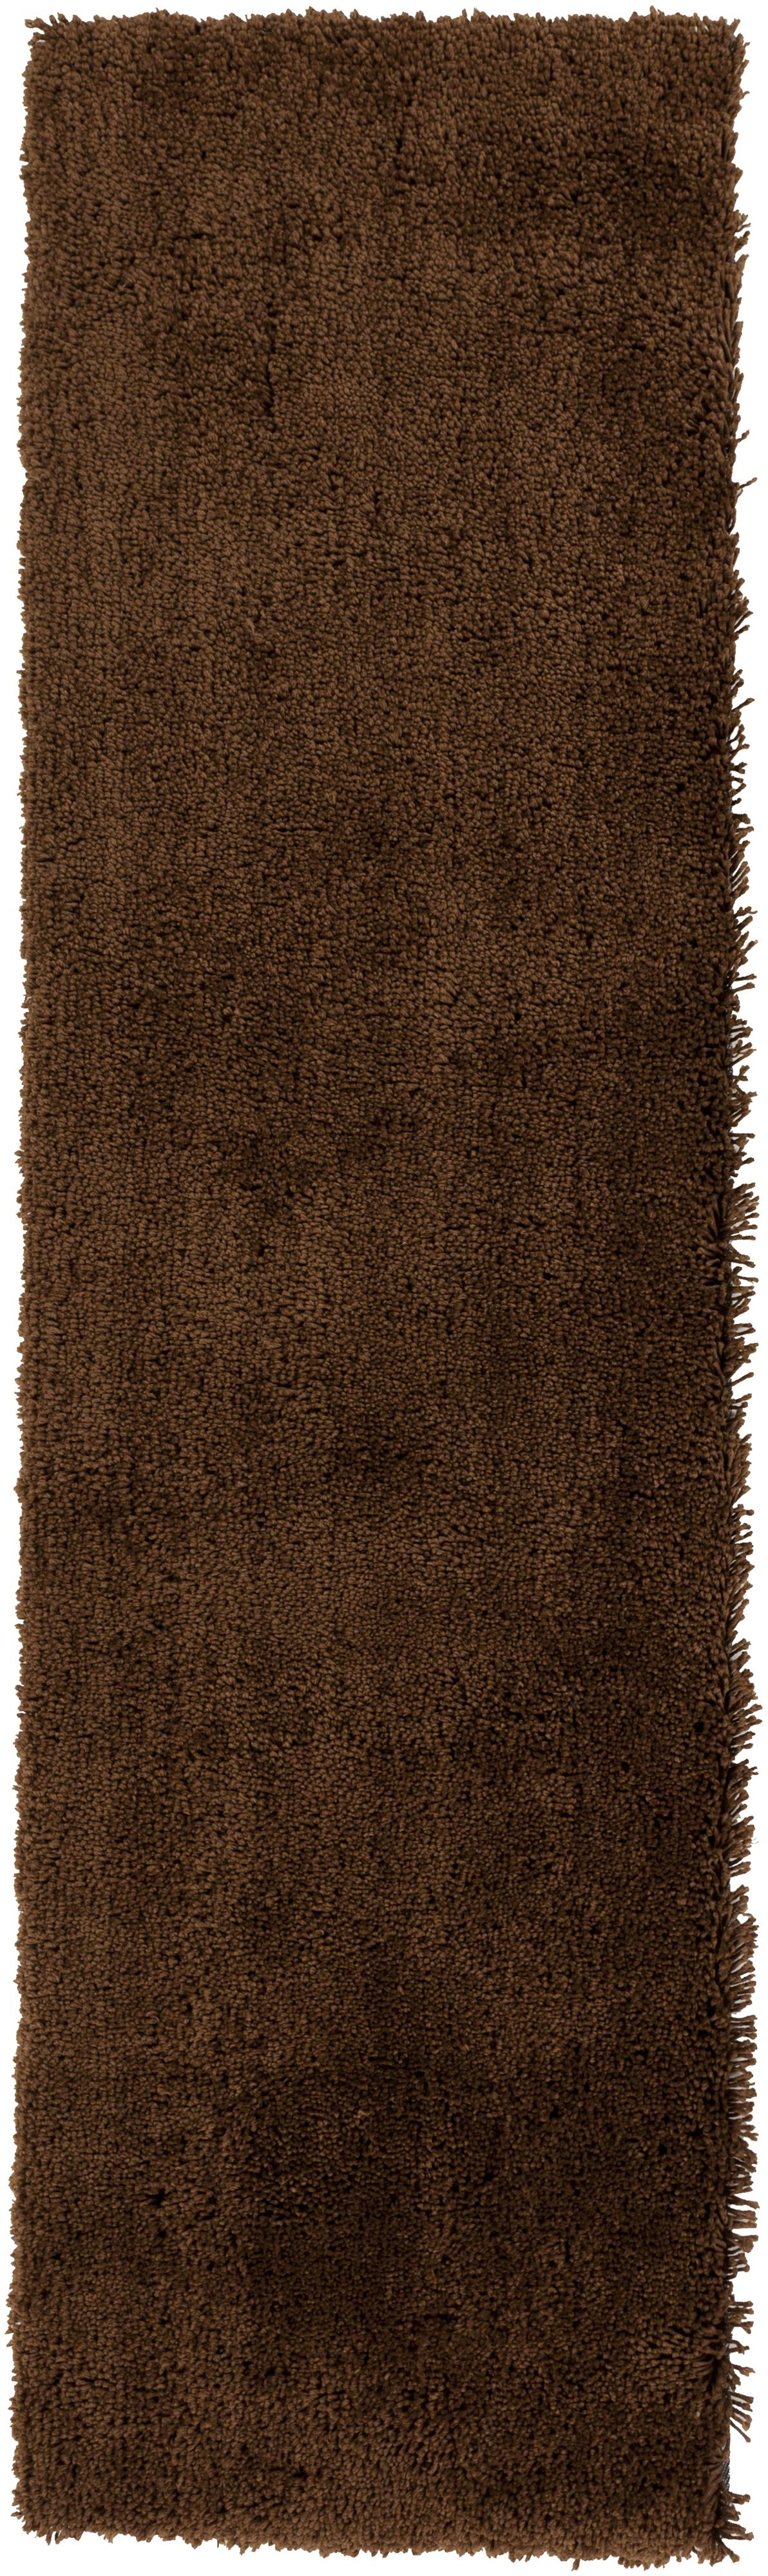 "Surya Rugs Mellow 2'3"" x 8' - Item Number: MLW9003-238"